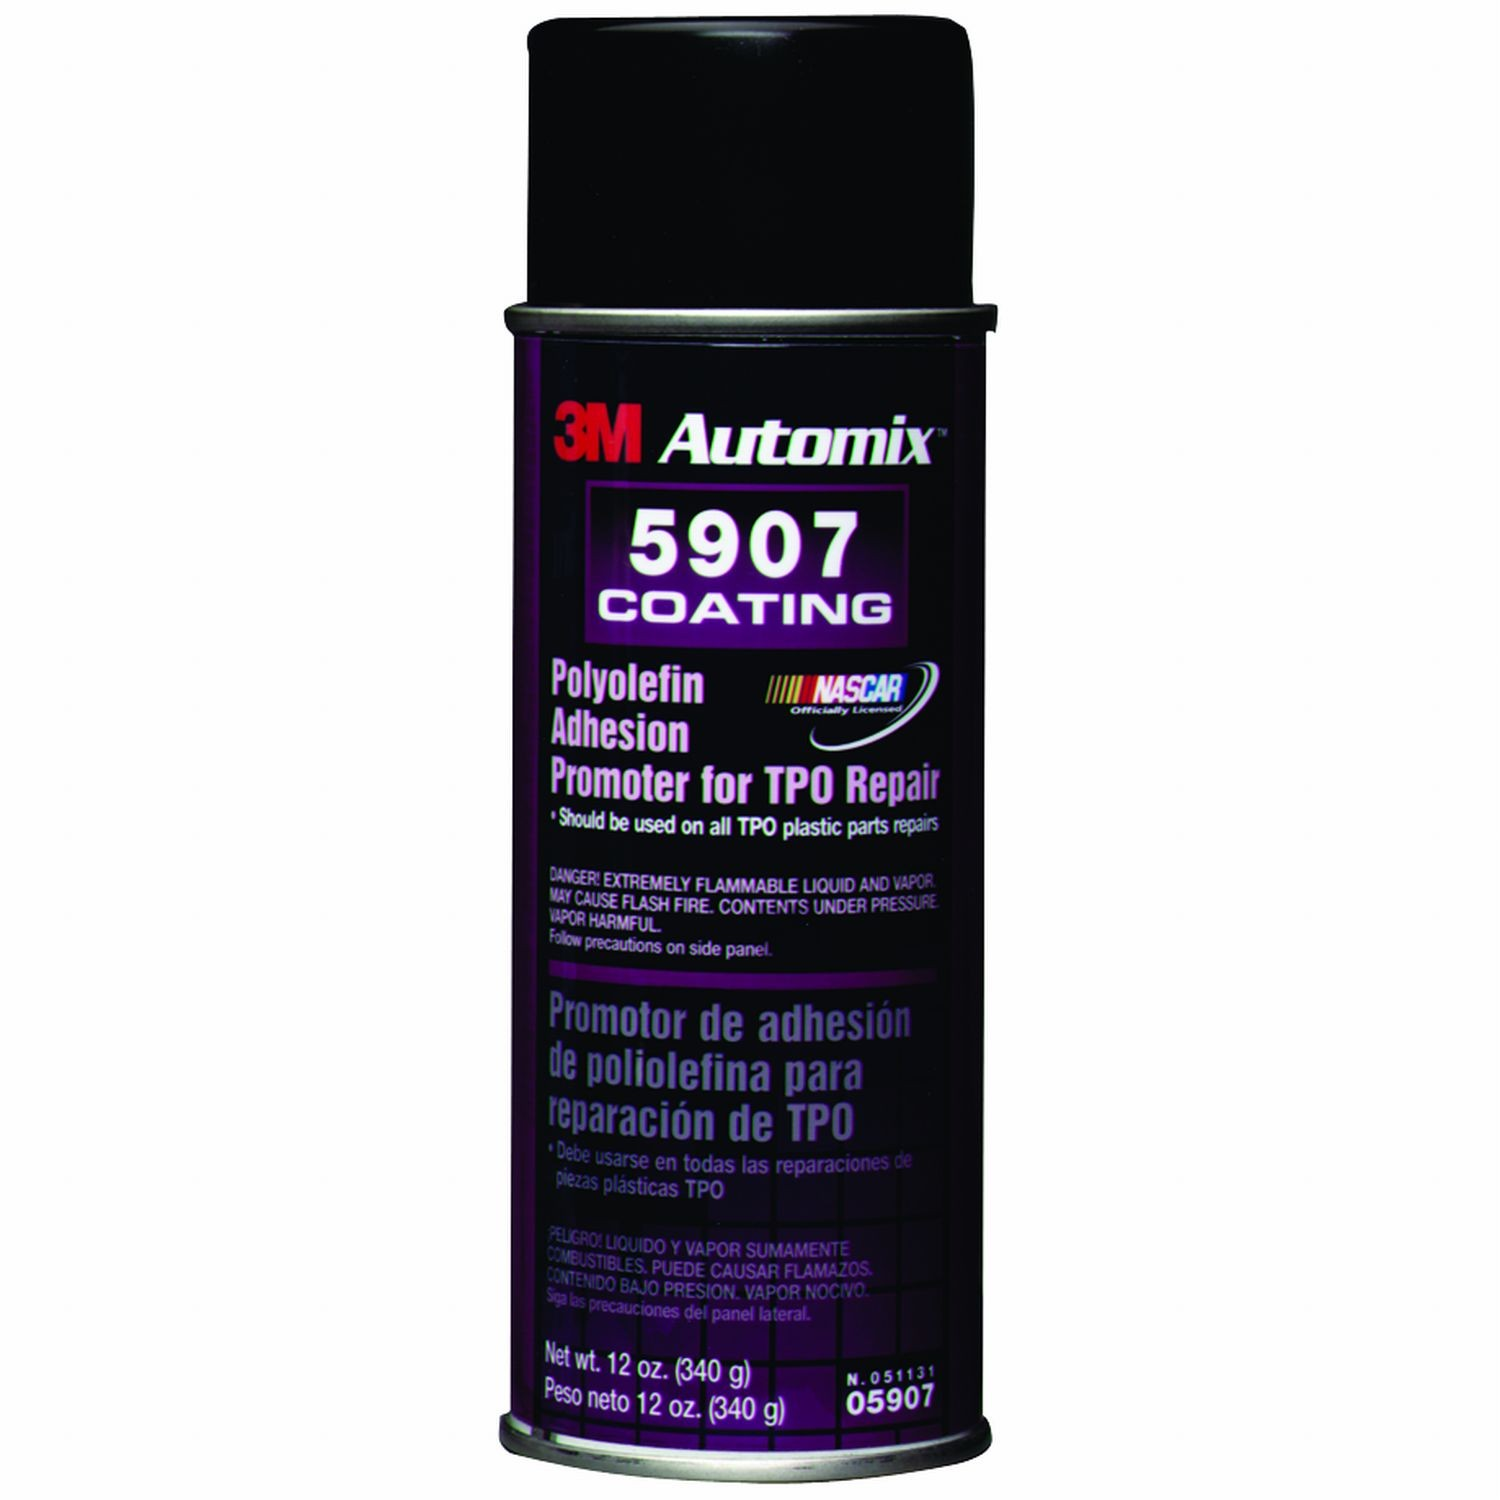 3M Polyolefin Adhesion Promoter